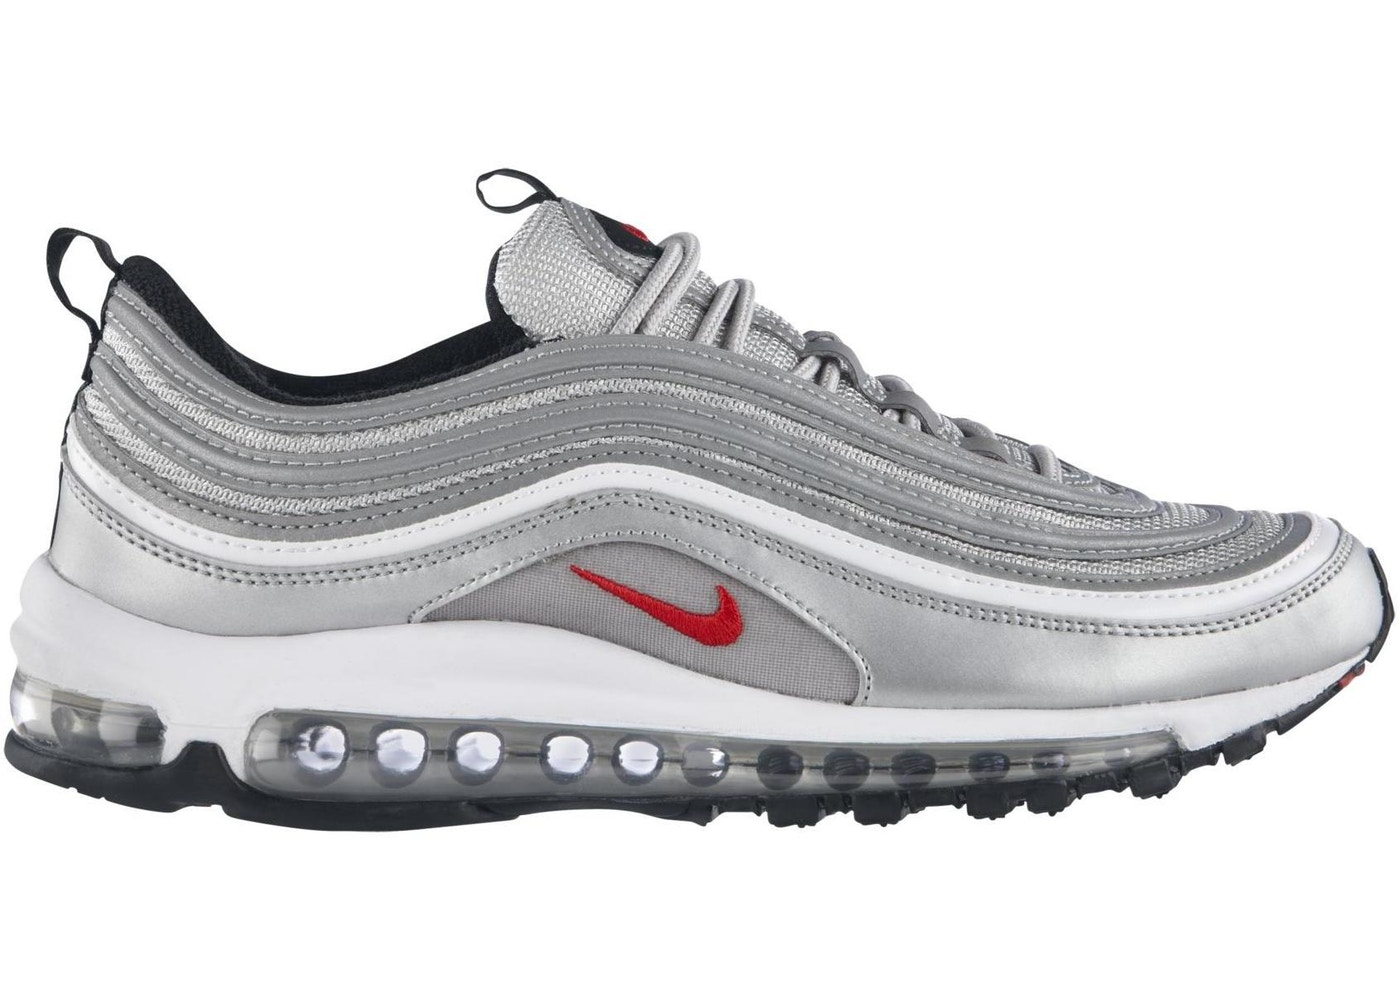 size 40 c12f6 0cc28 Nike Air Max Shoes - New Highest Bids